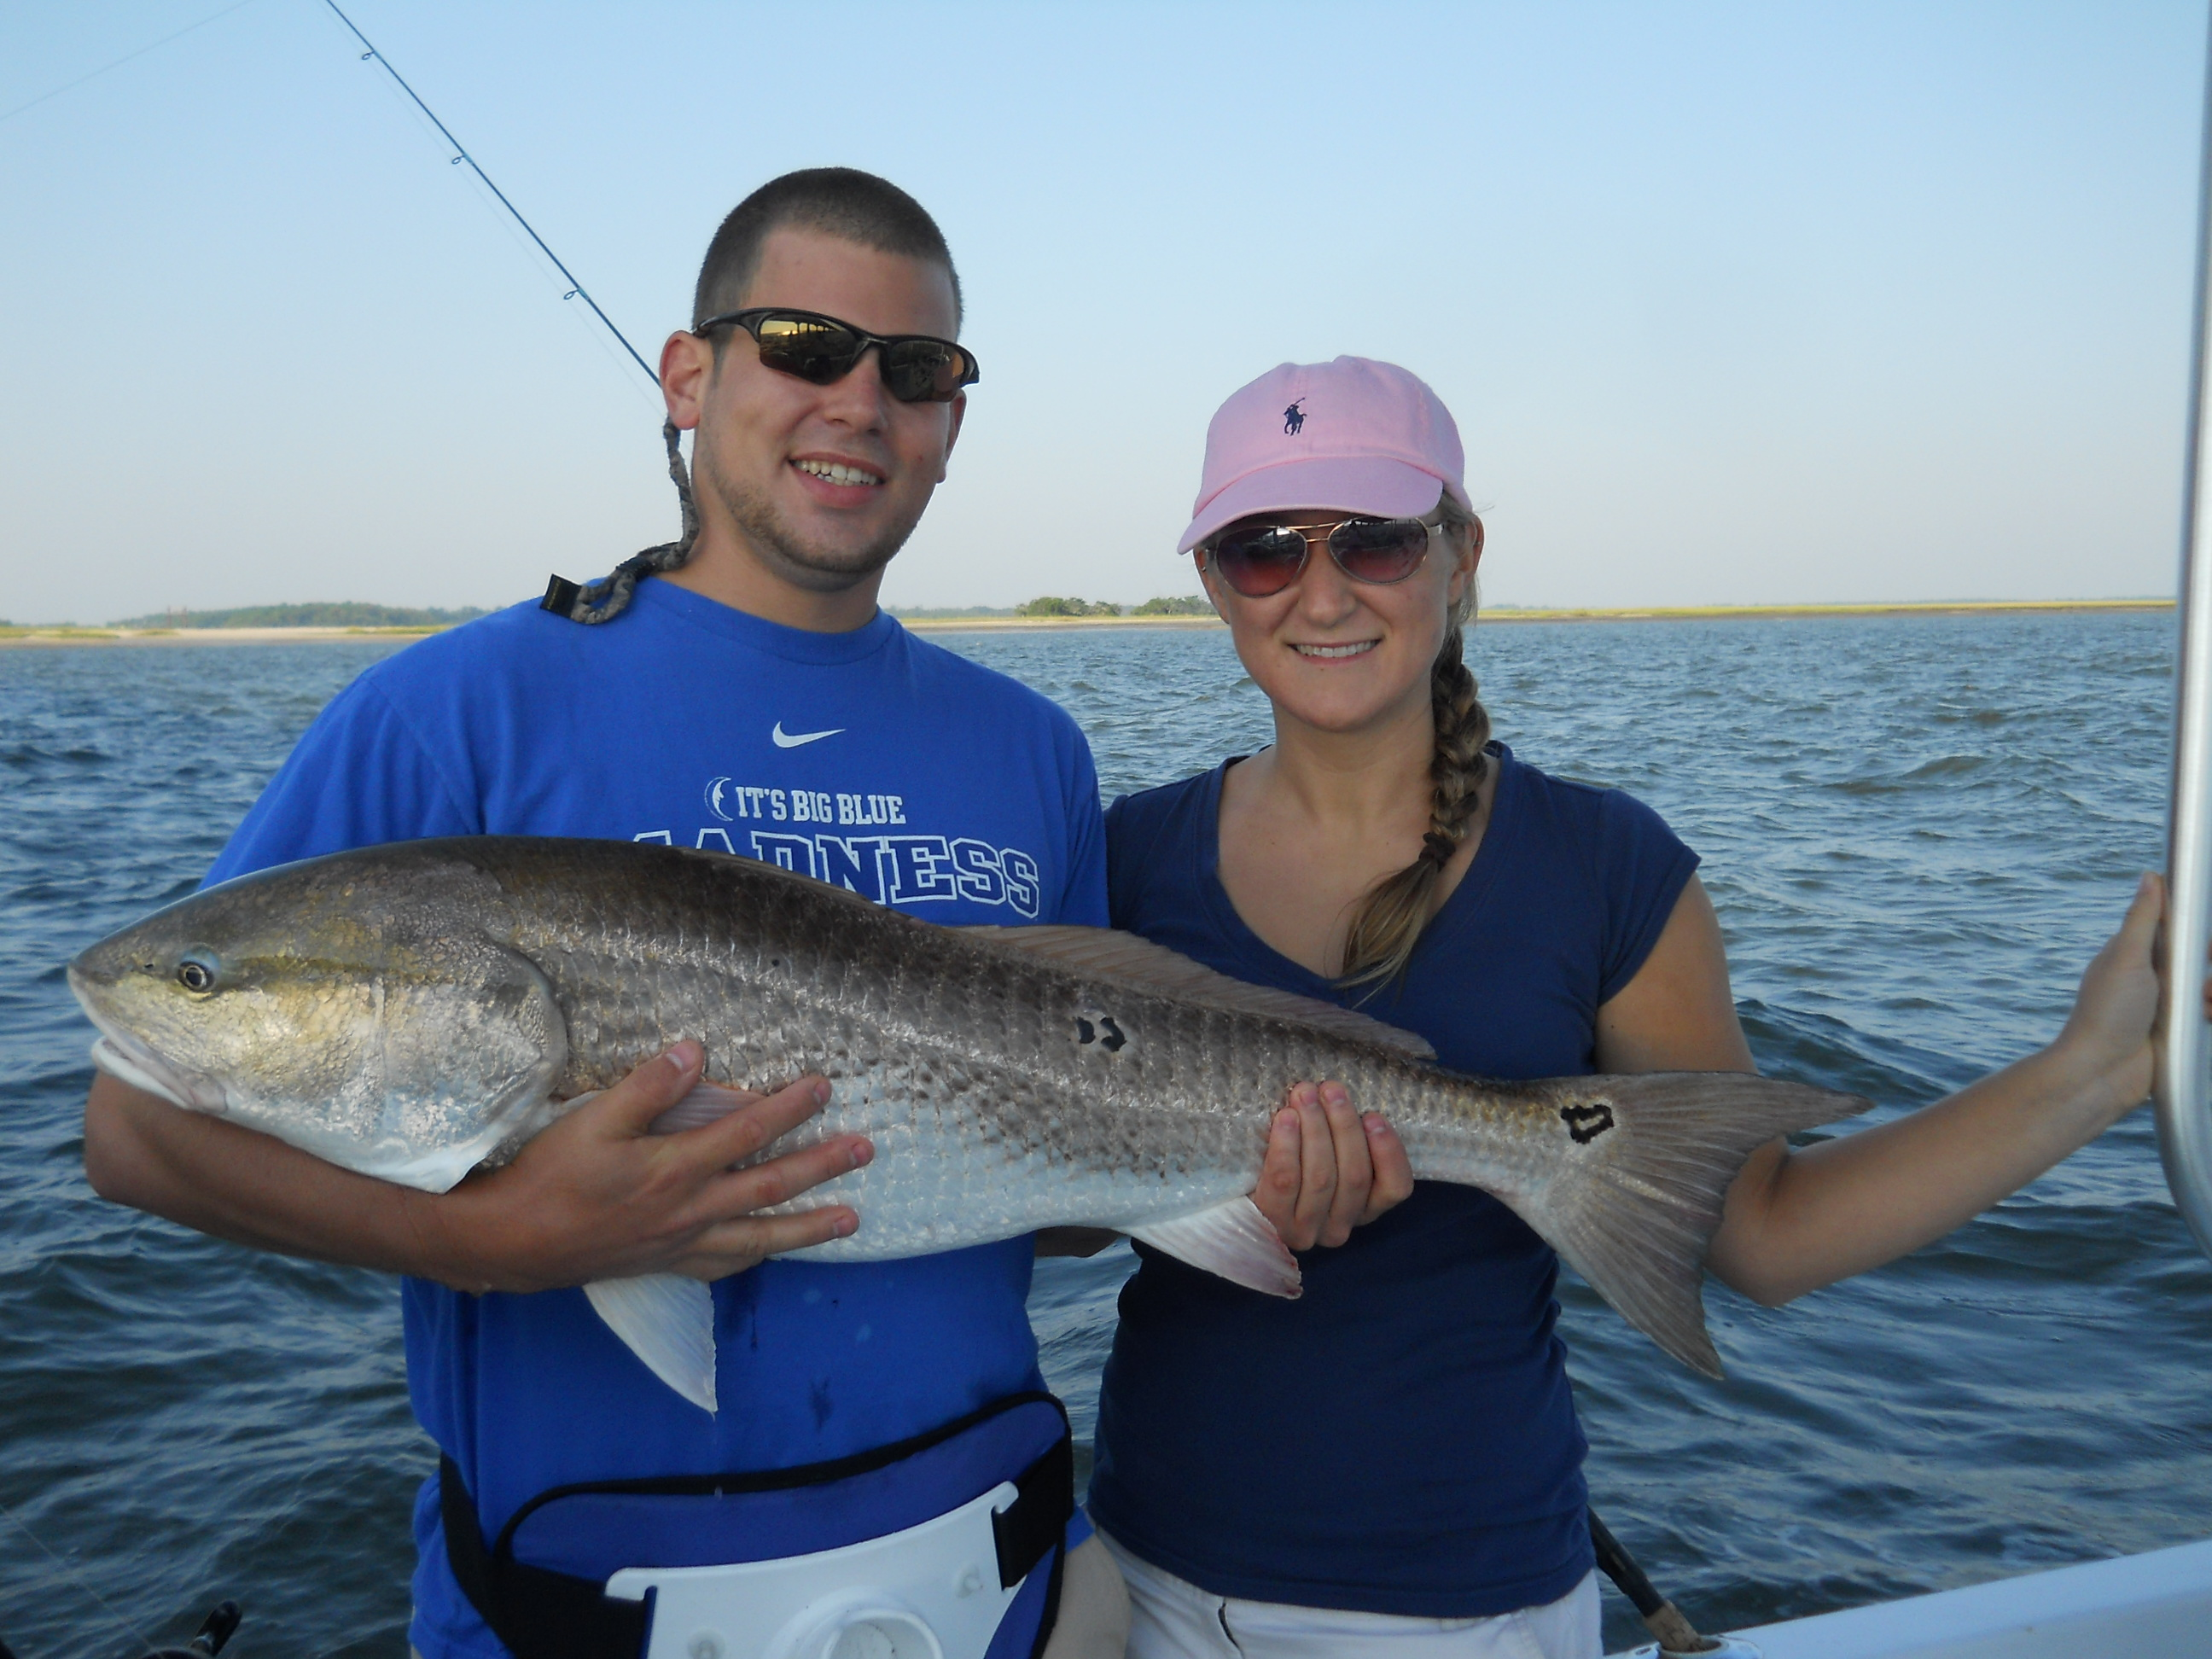 Bull redfish fishing charters in hilton head island south for Hilton head surf fishing